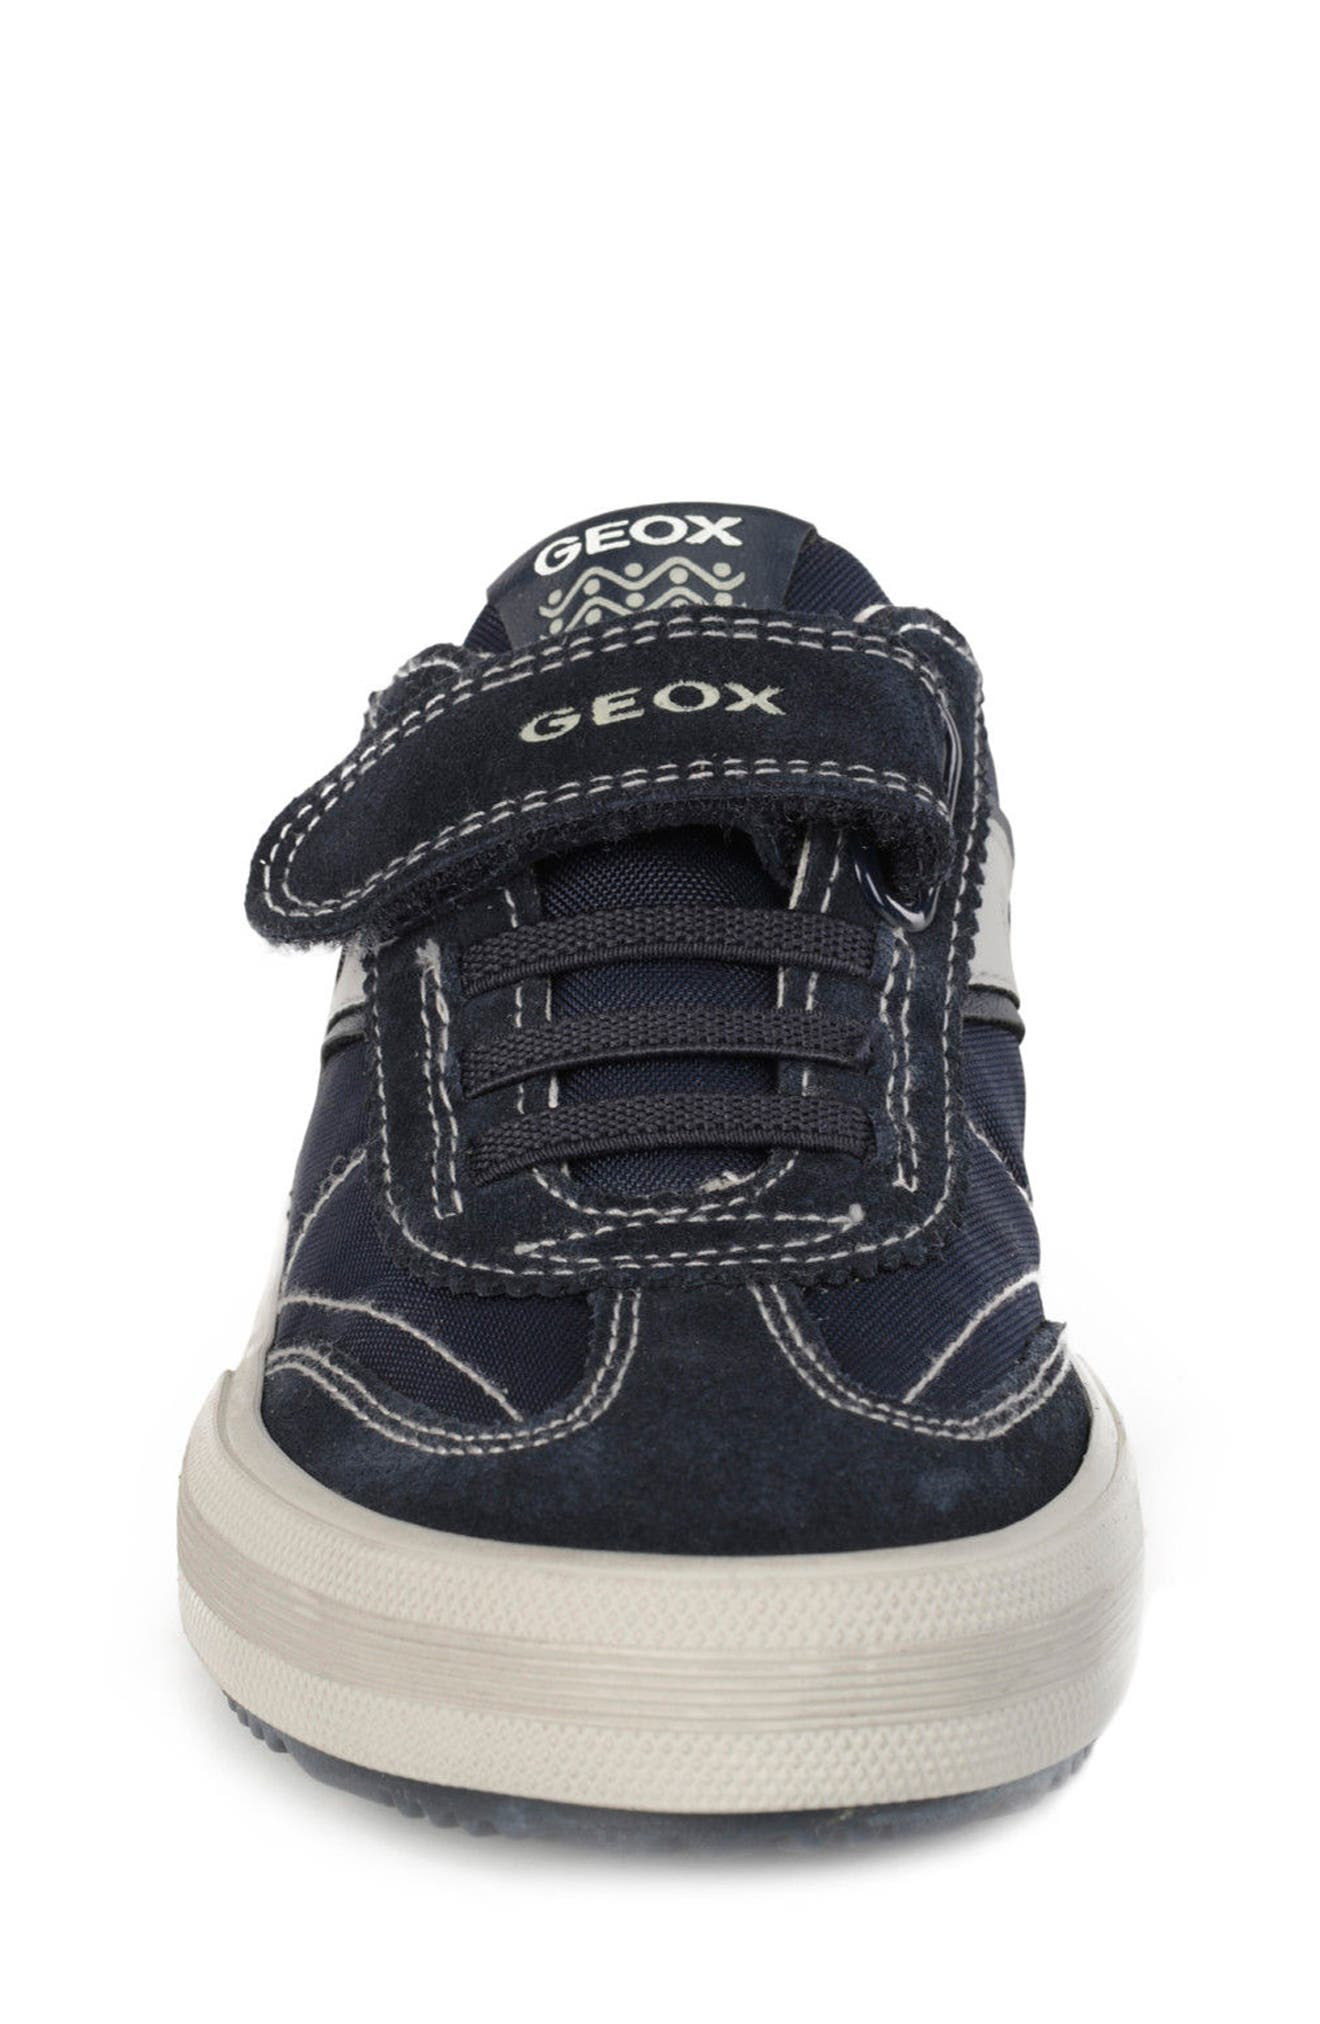 Alonisso Low Top Sneaker,                             Alternate thumbnail 4, color,                             NAVY/ GREY